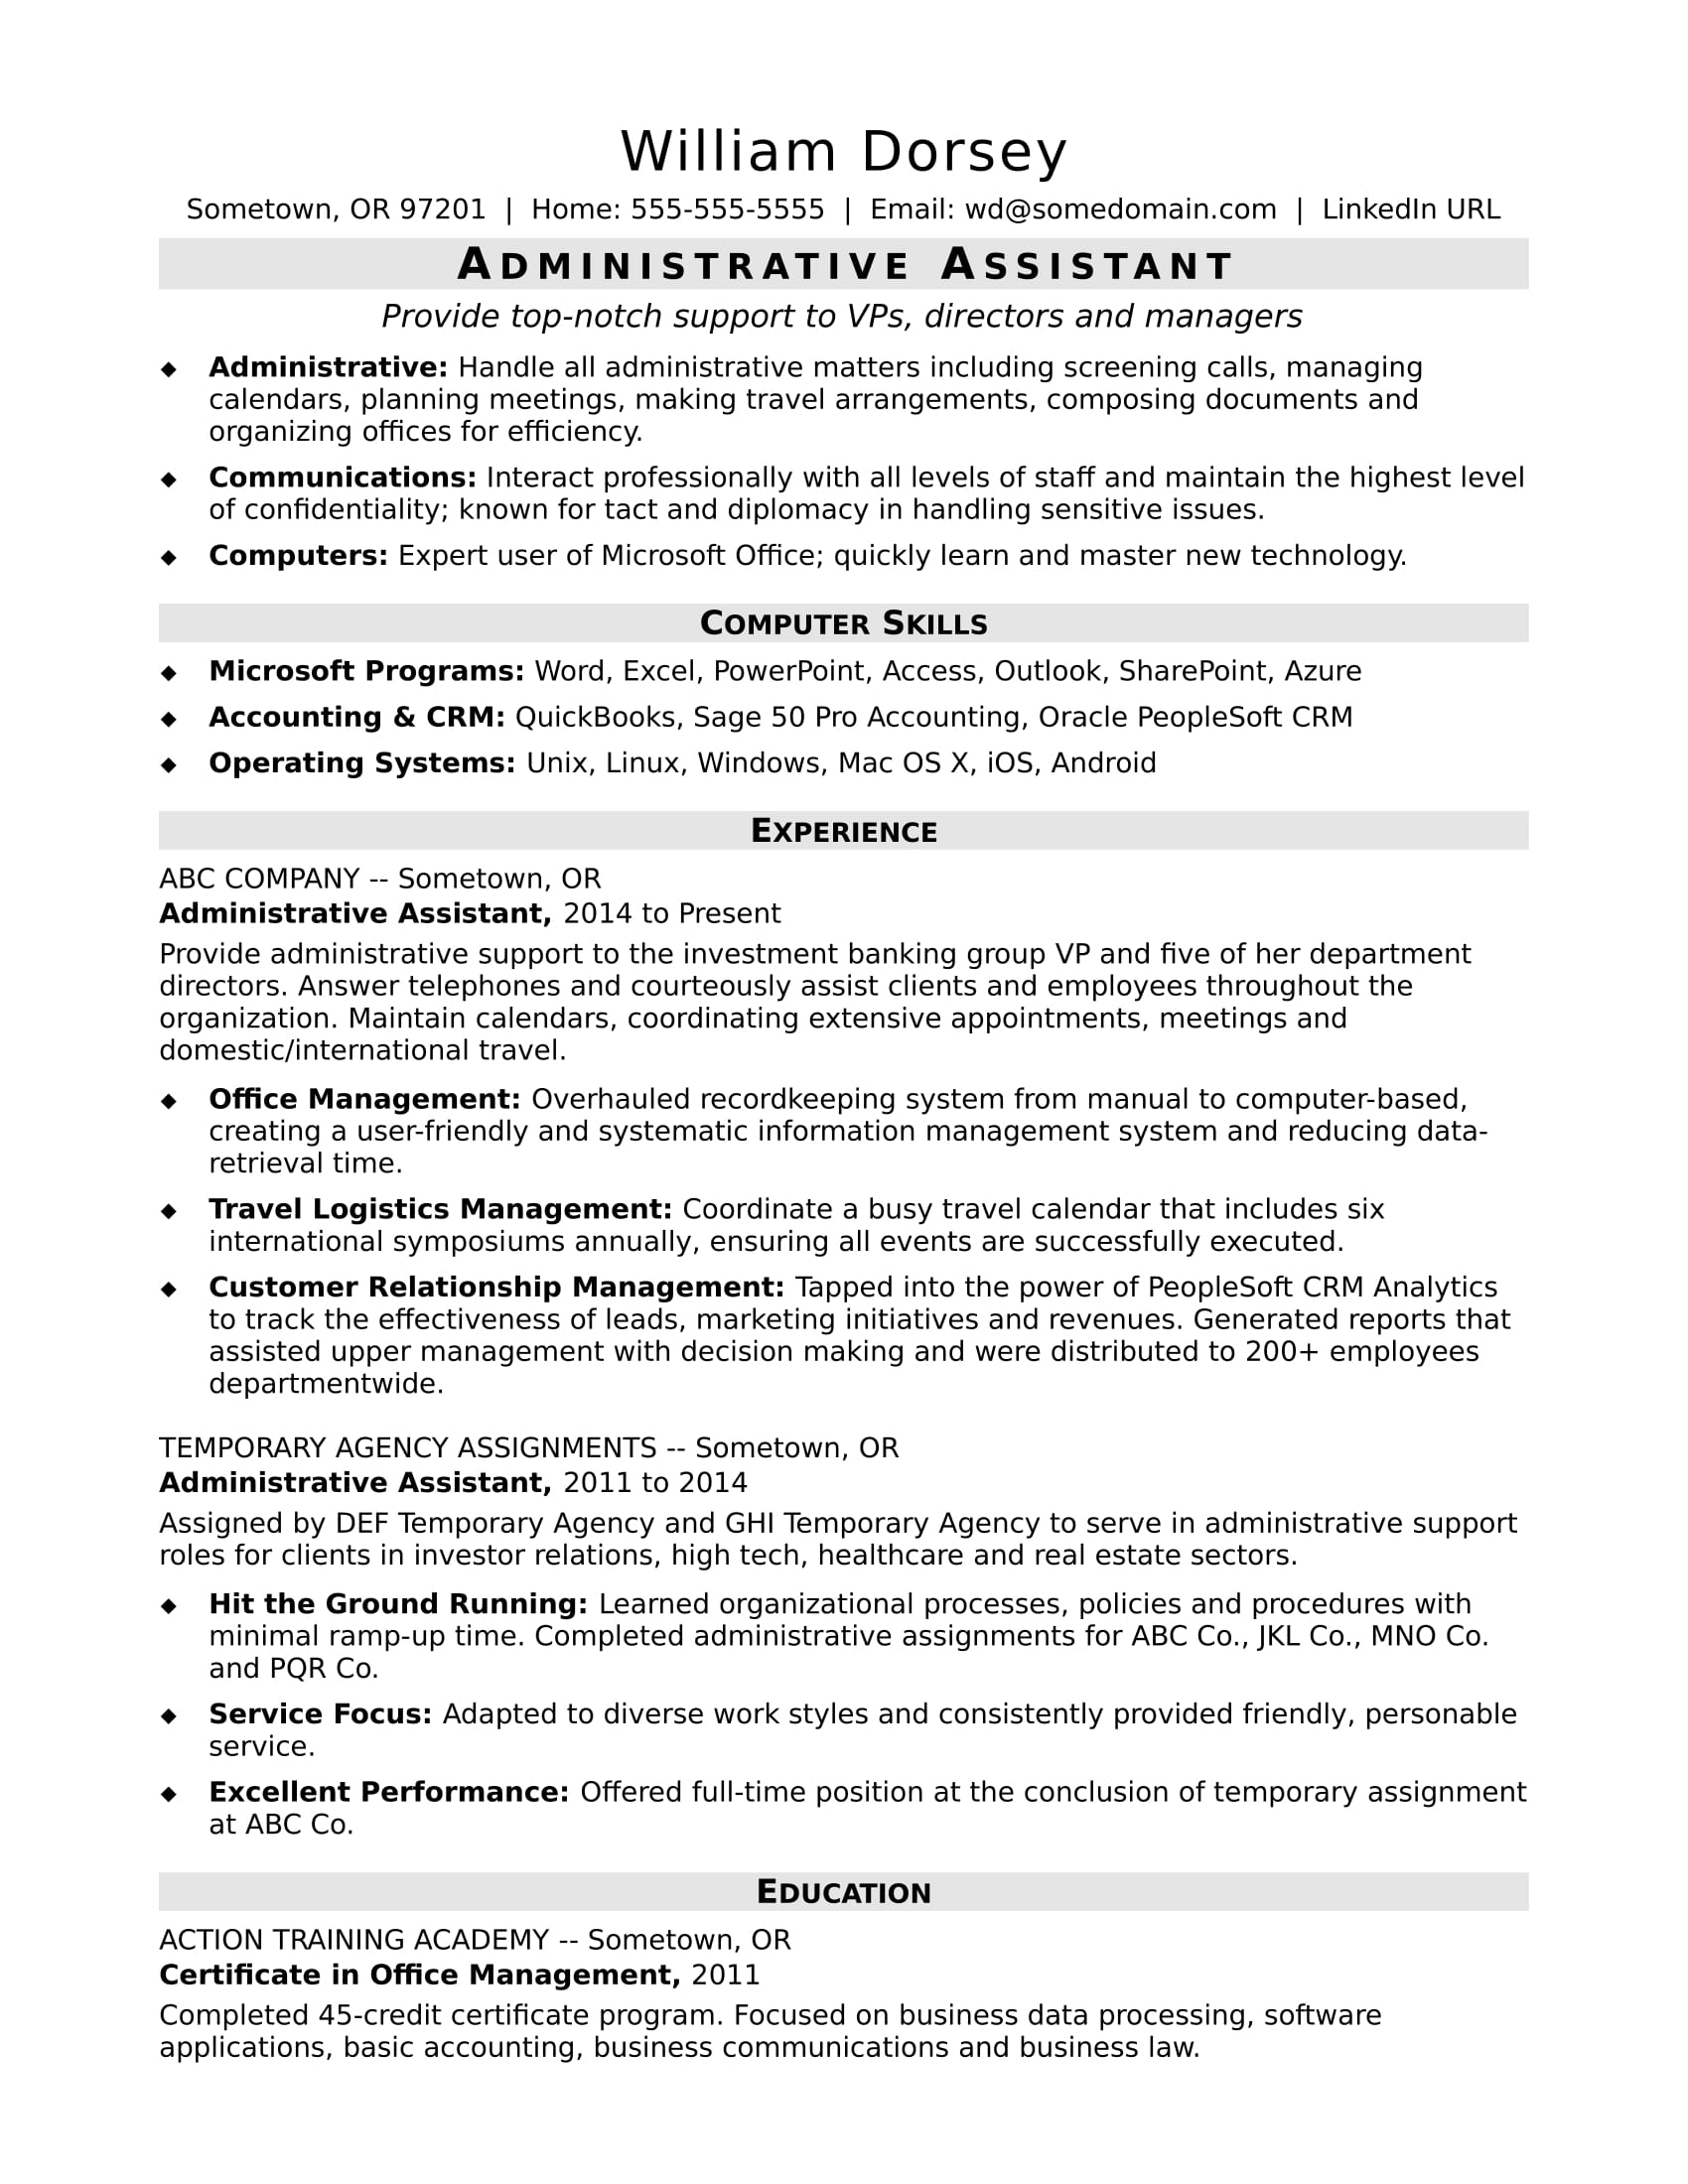 Sample Resume For A Midlevel Administrative Assistant  Tips On Making A Resume